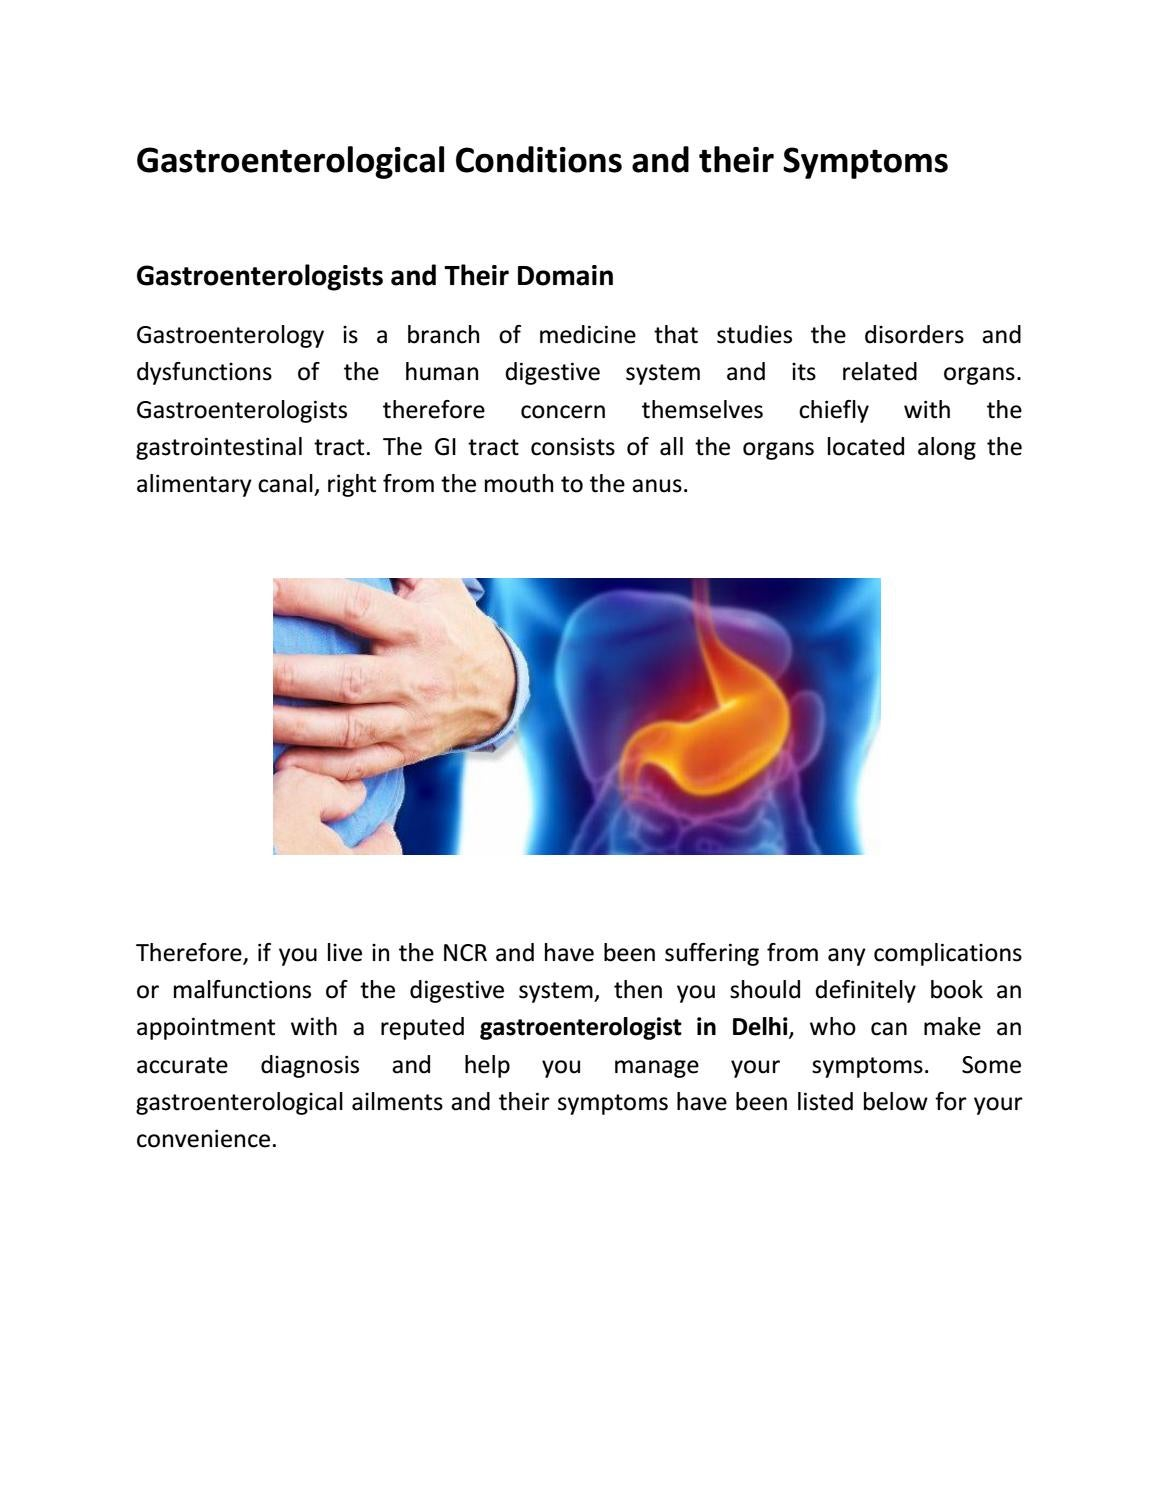 Gastroenterological Conditions and their Symptoms by Dr